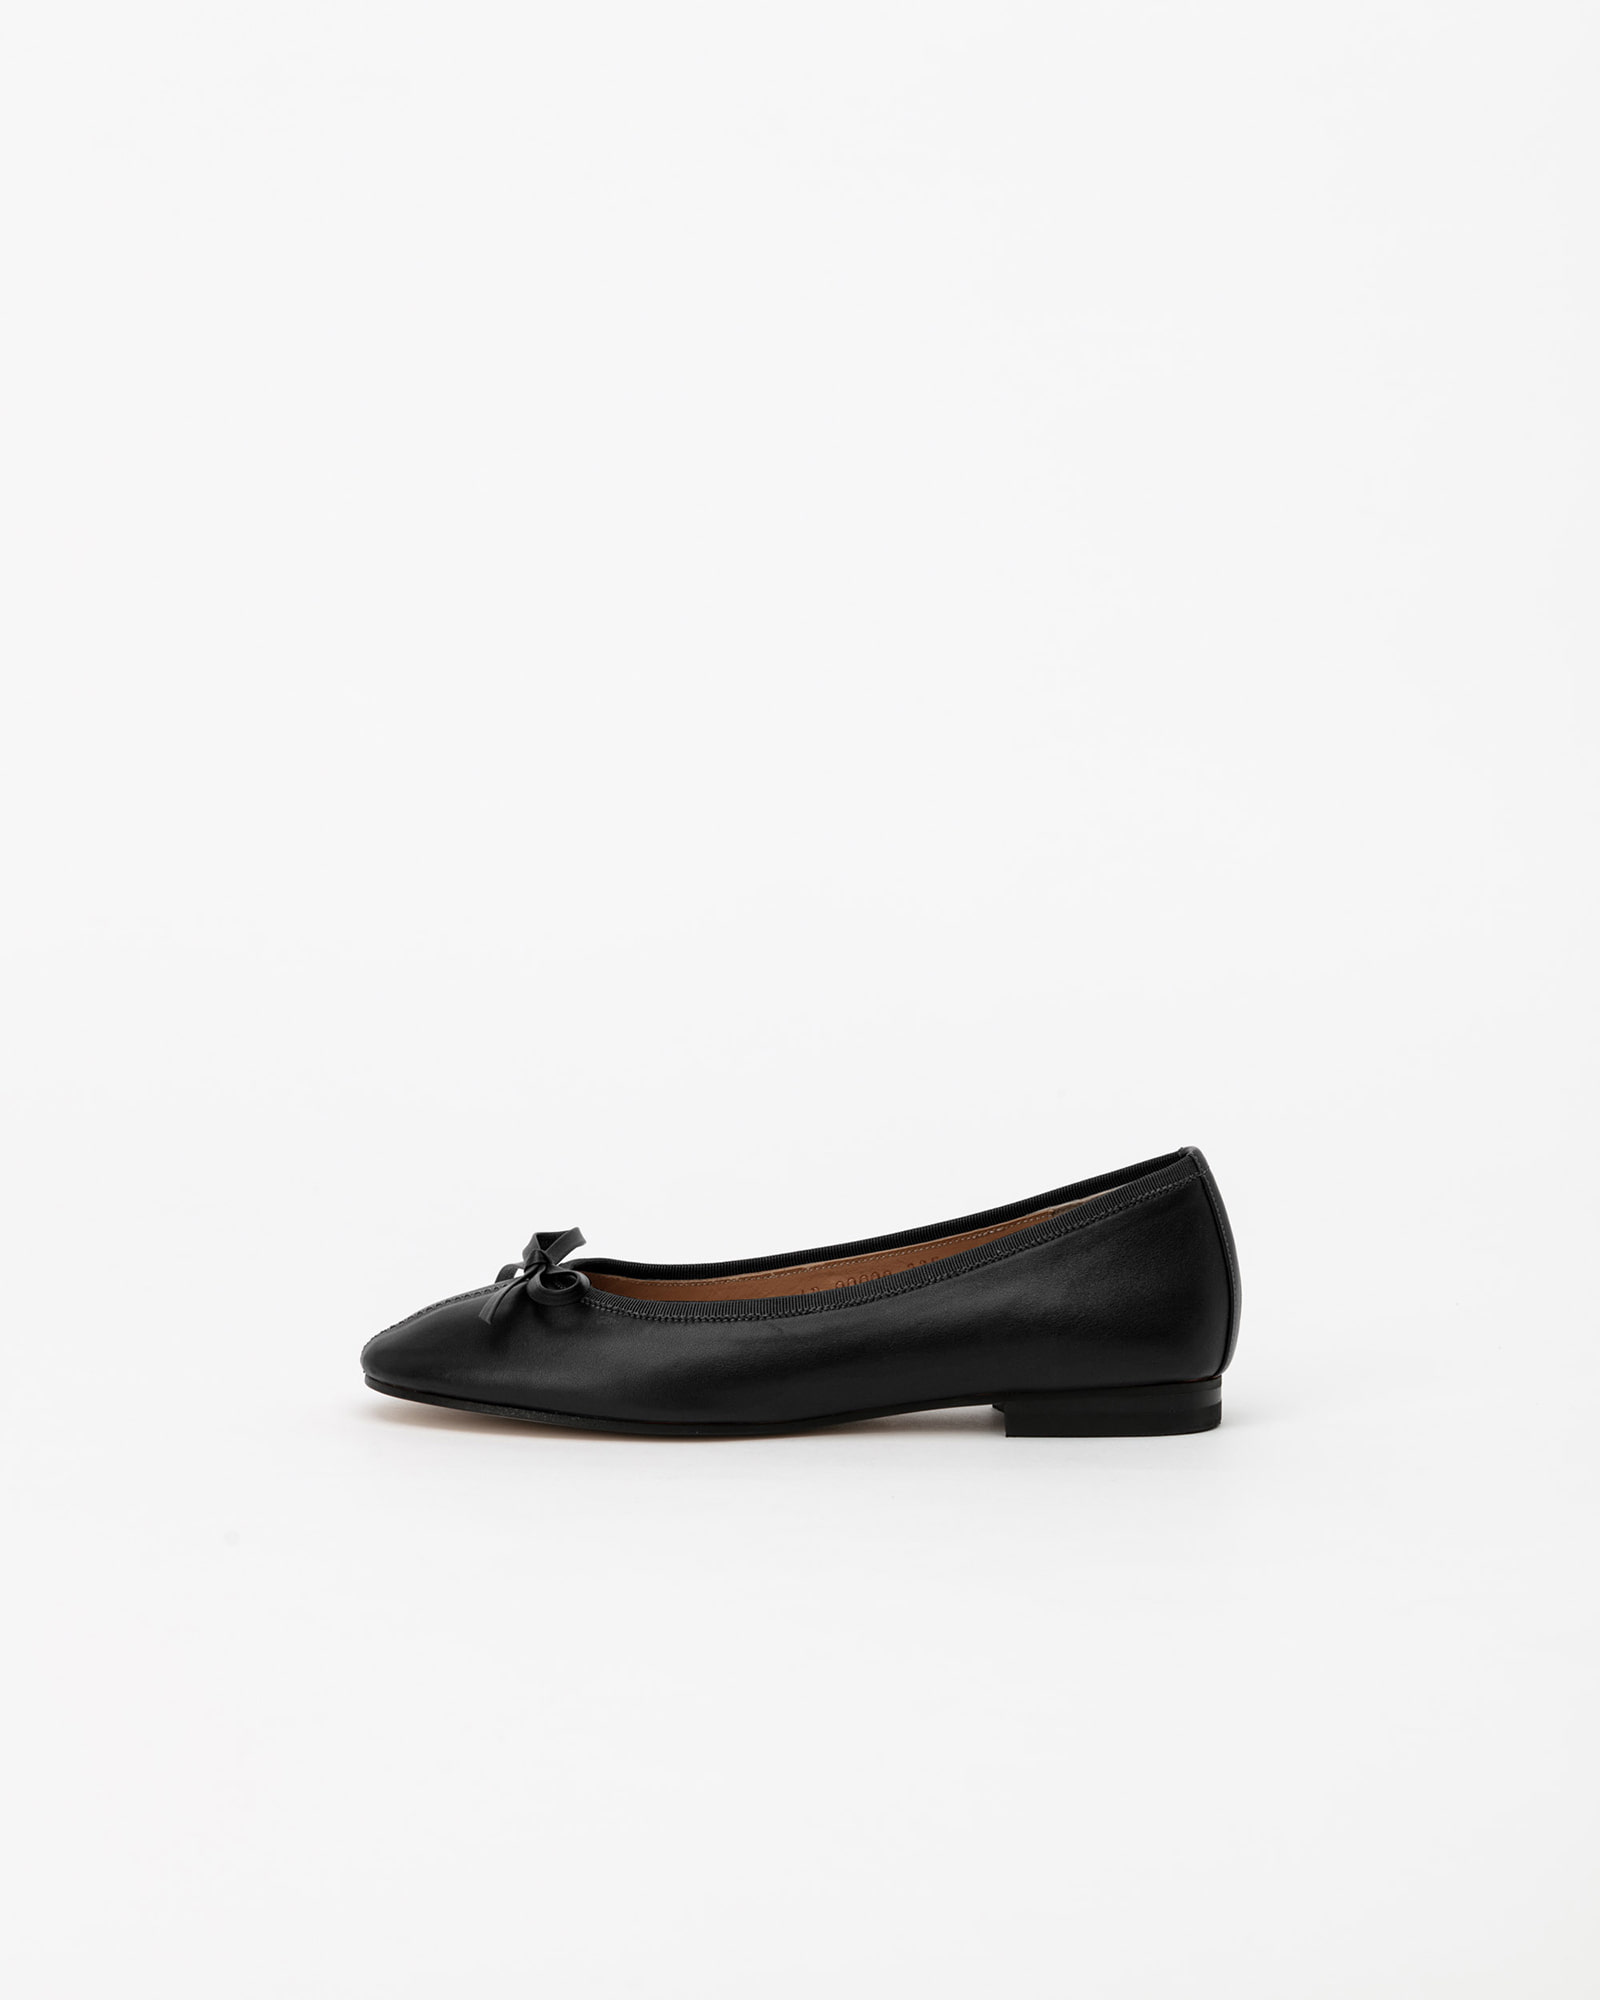 Urbana Flat Shoes in Black